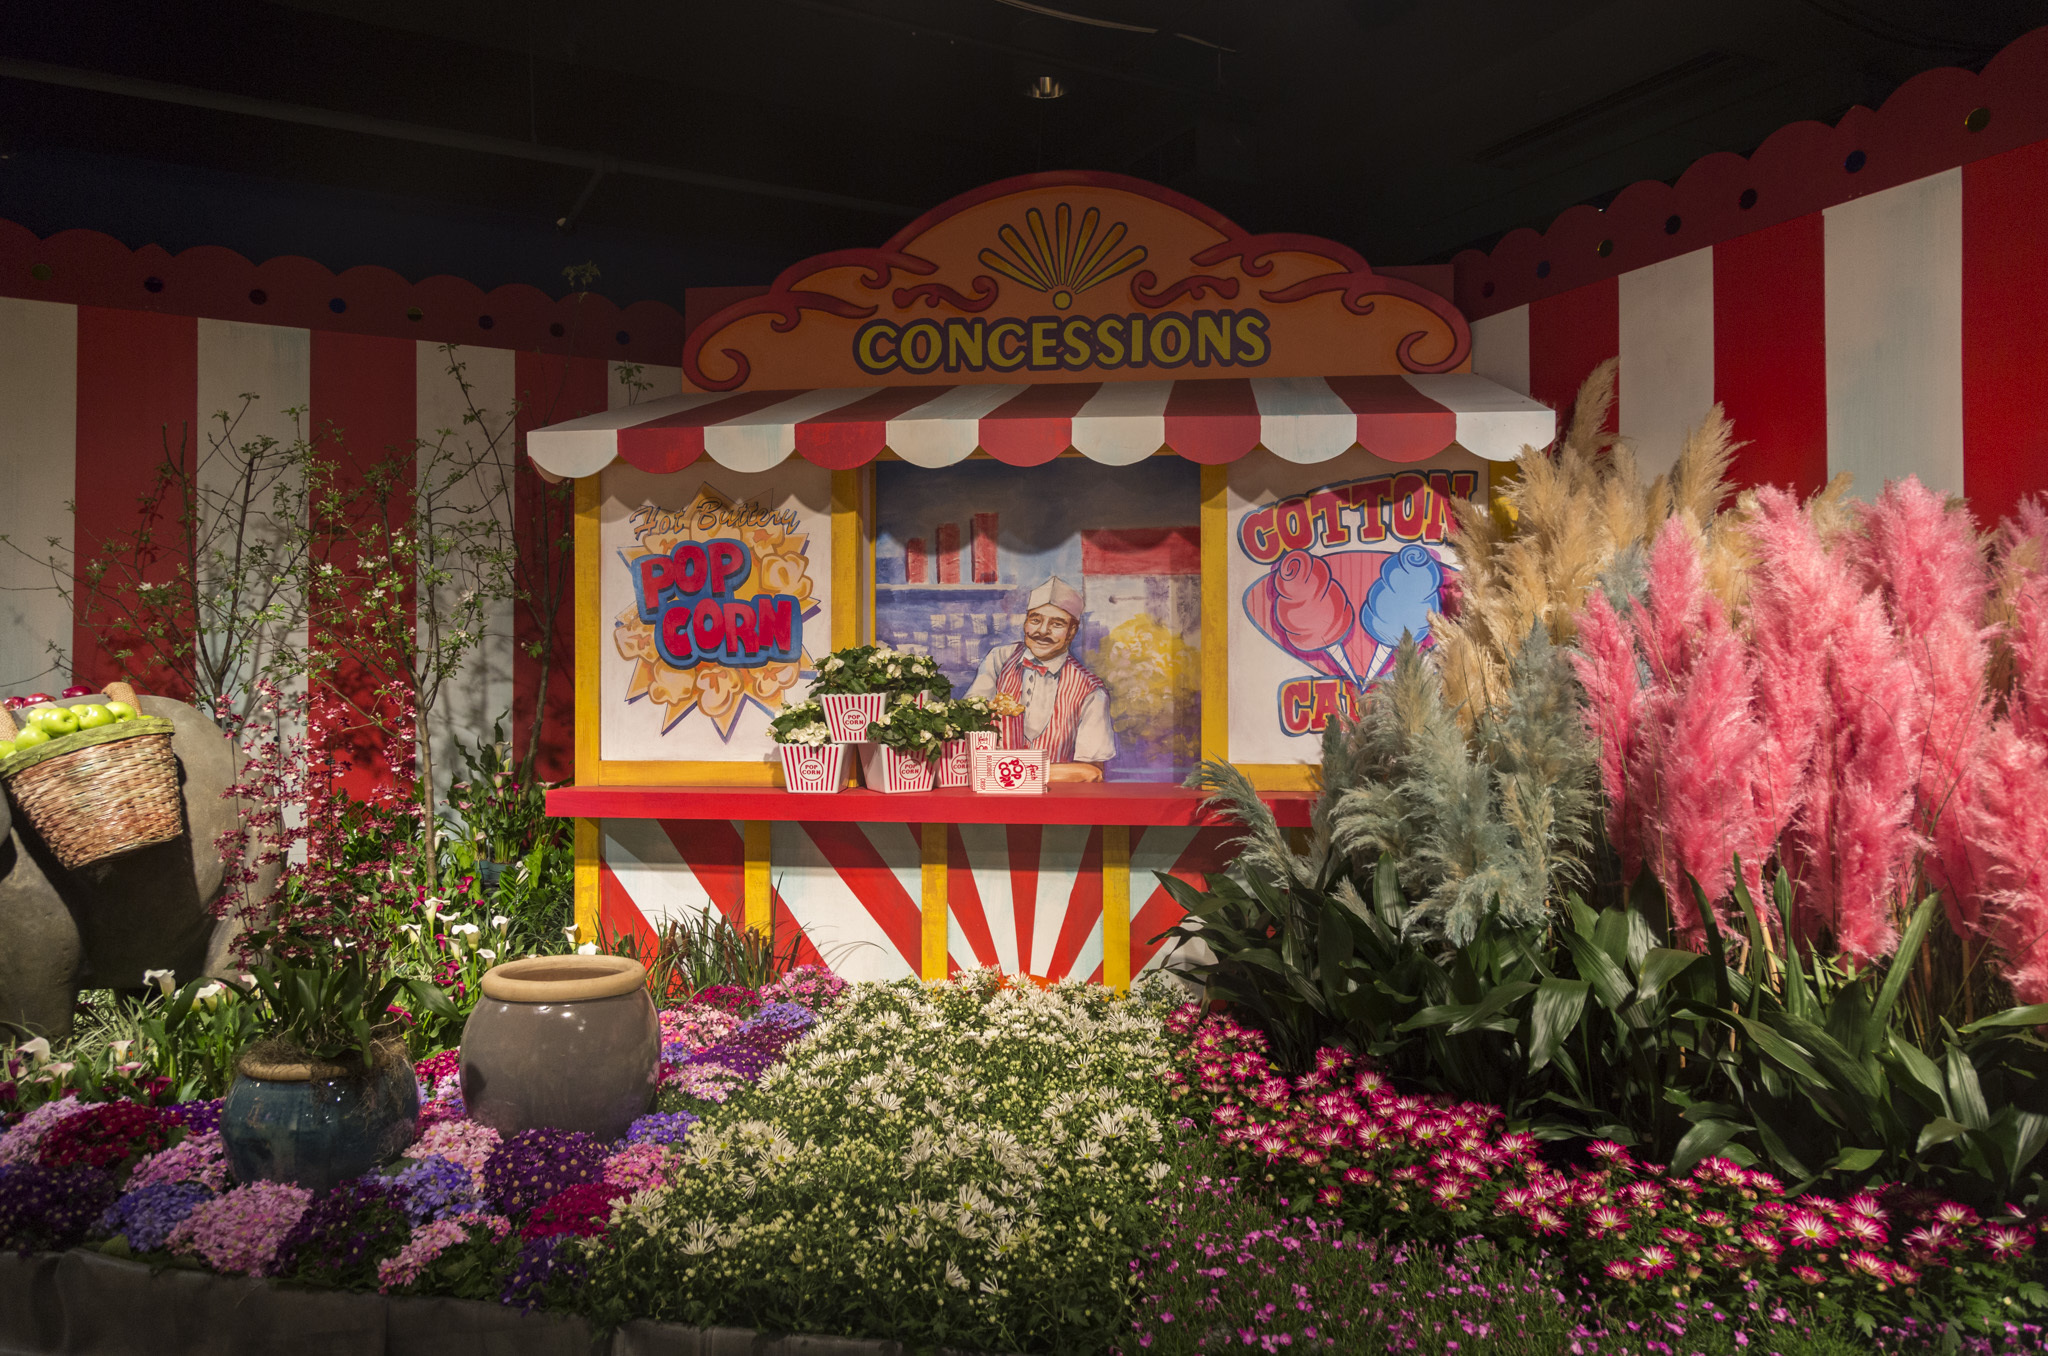 See macy 39 s in full bloom at the annual flower show - Chicago flower and garden show 2017 ...